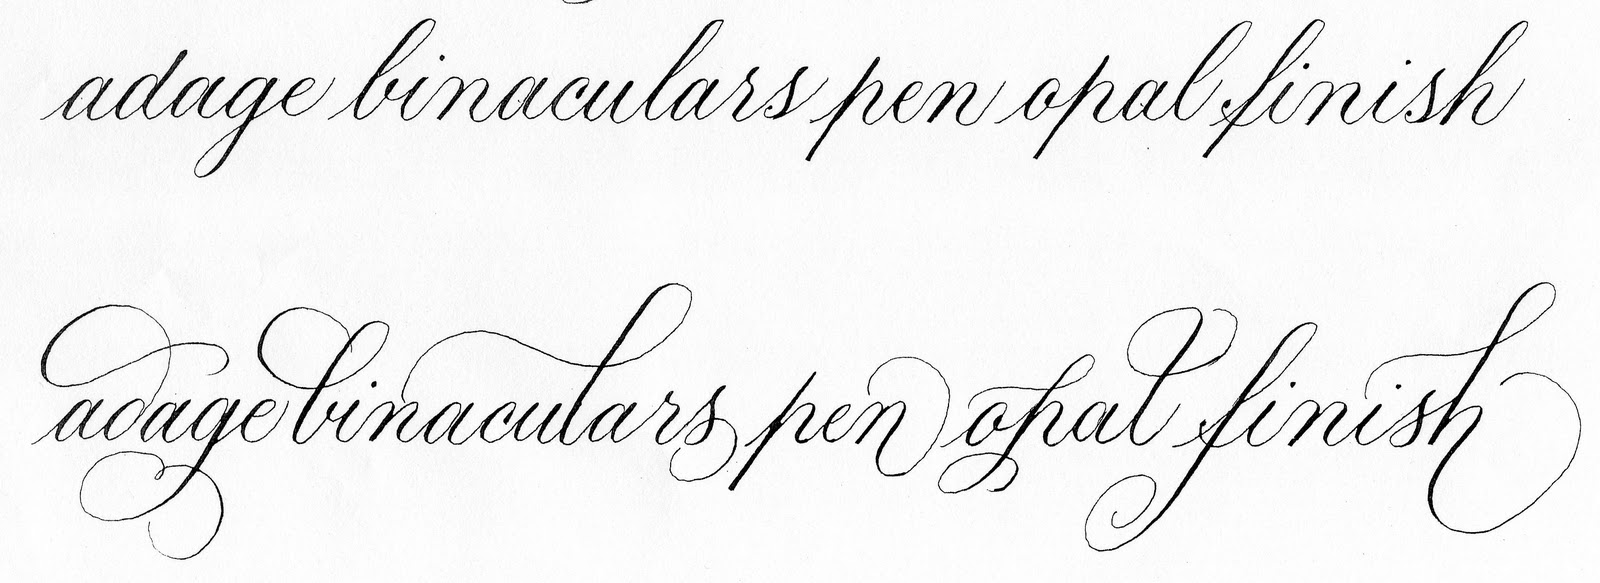 Deann singh calligraphy january copperplate